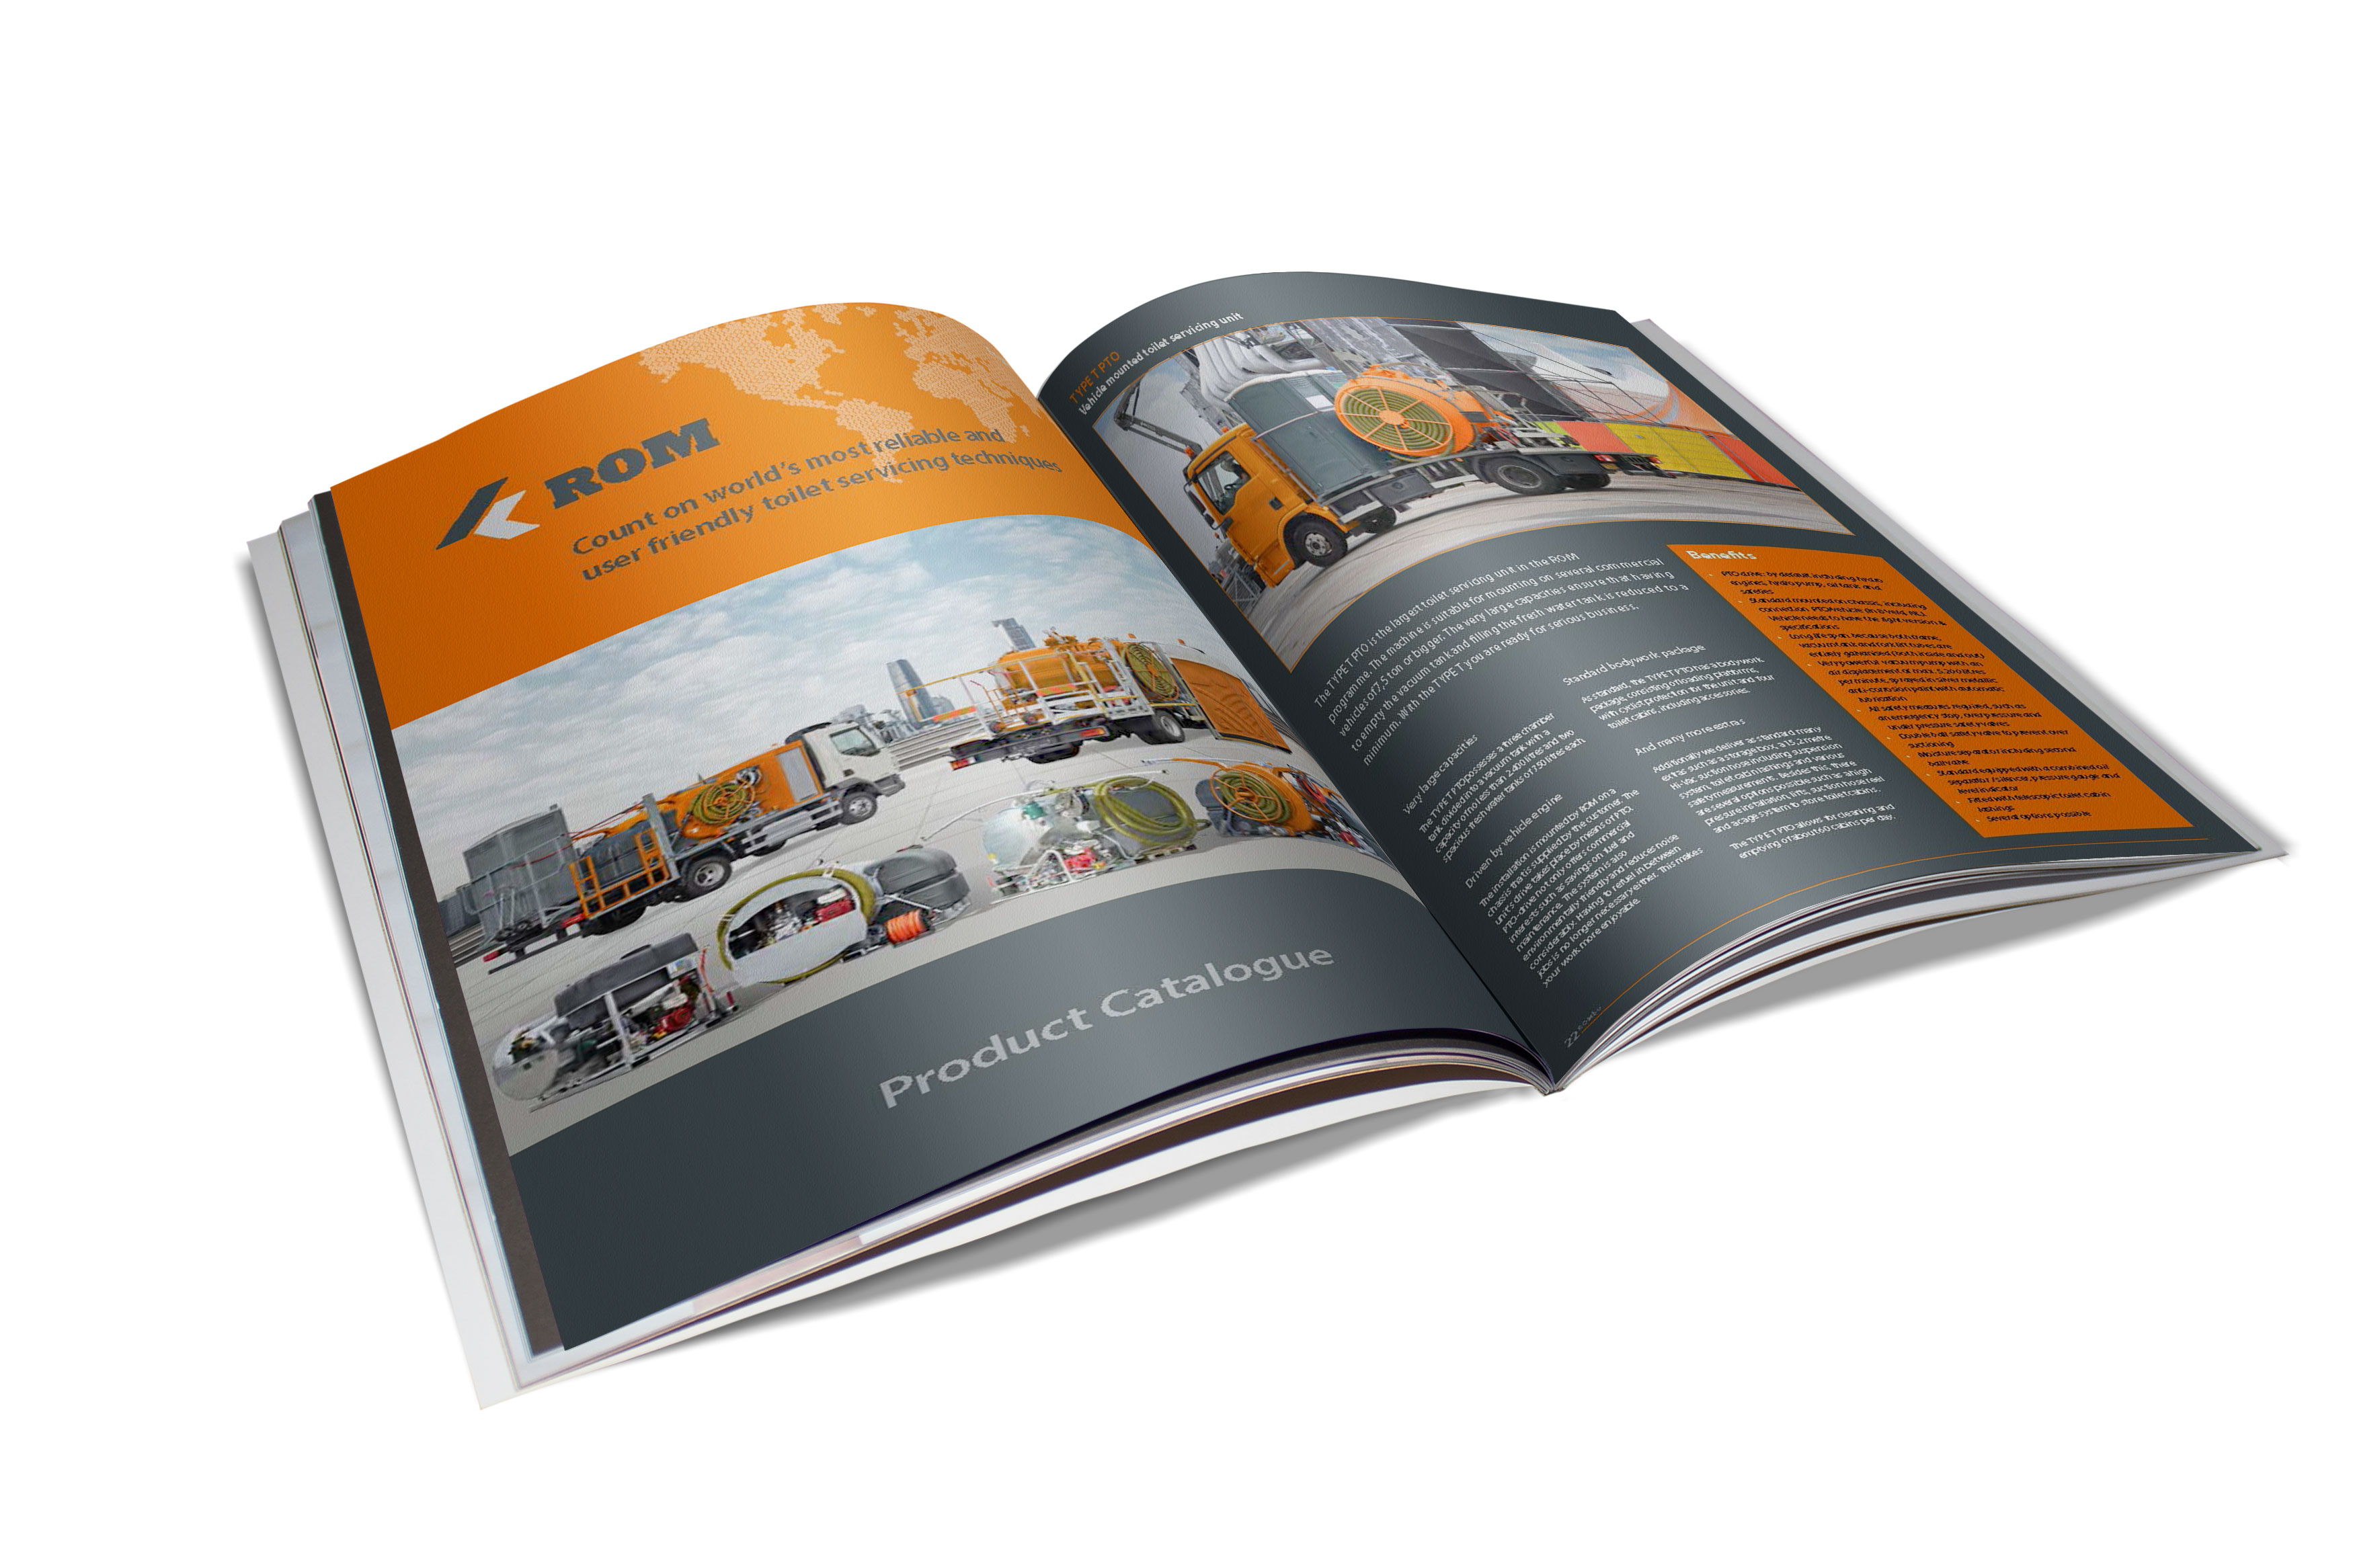 New toiletservice catalog available - ROM BV - Sewer cleaning- and